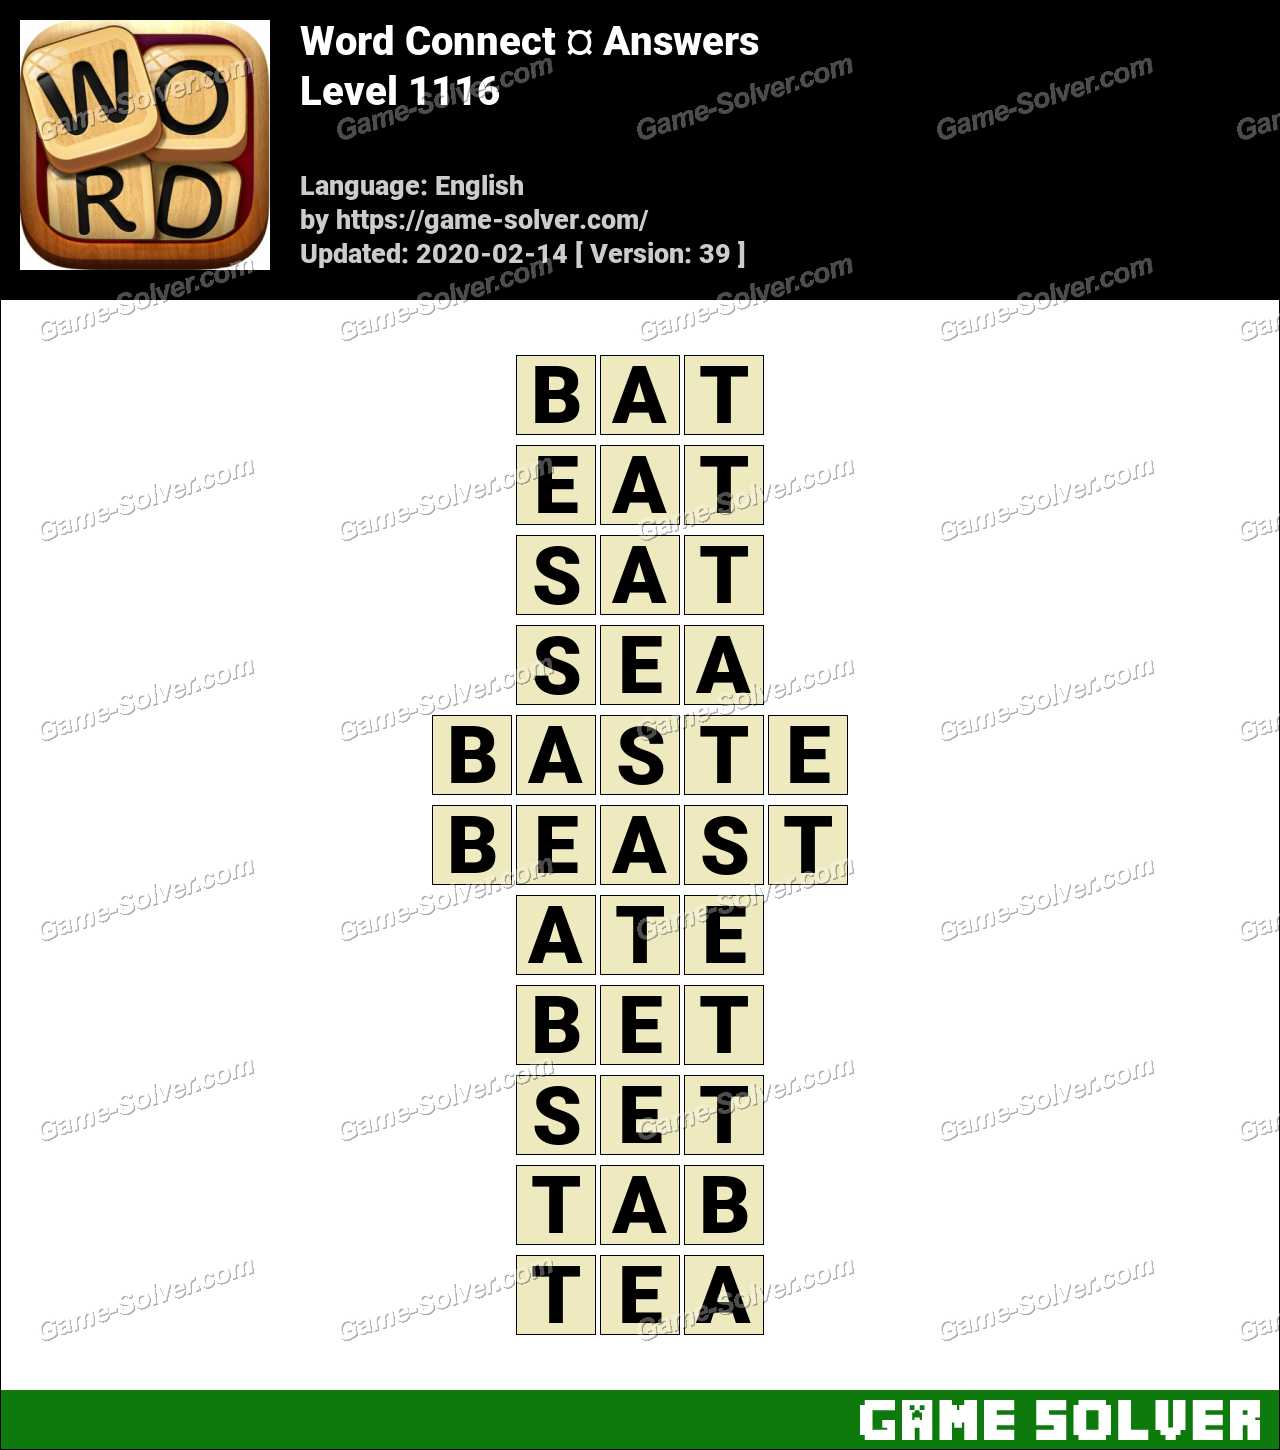 Word Connect Level 1116 Answers